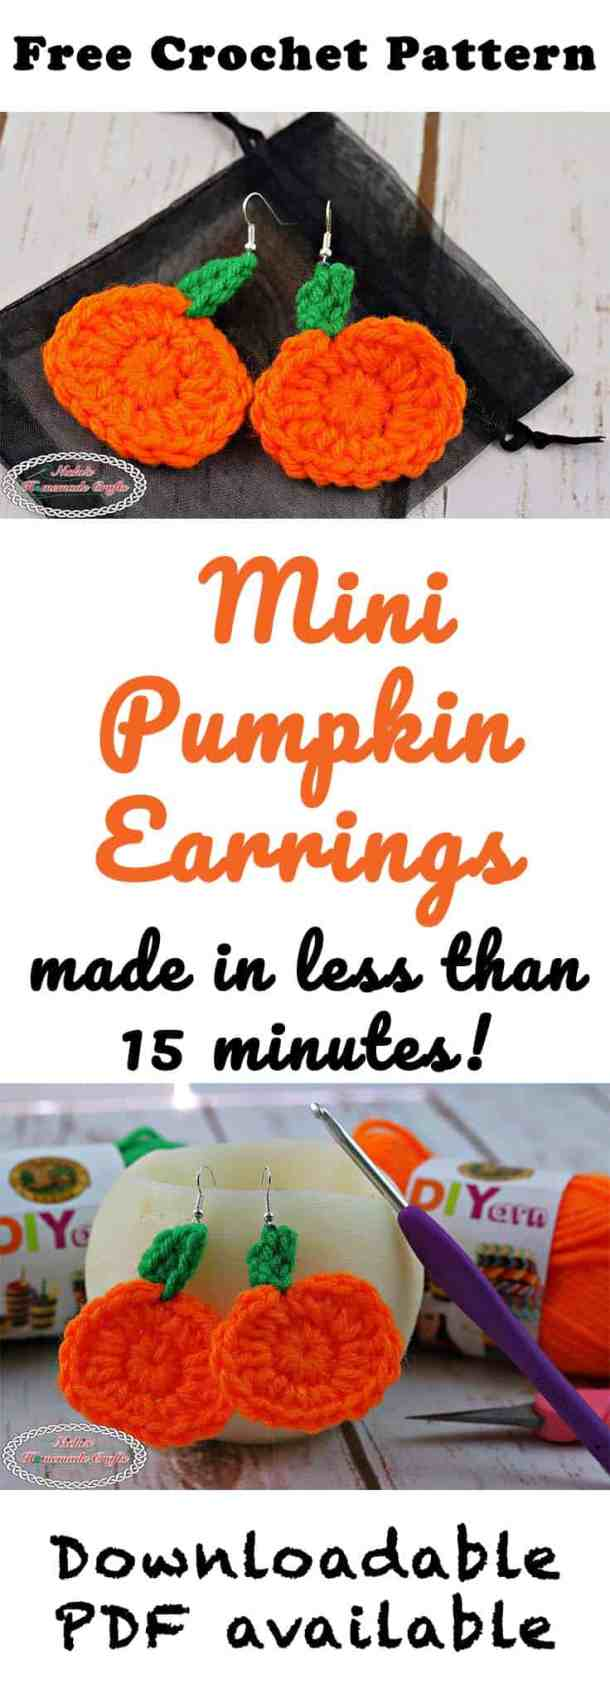 Mini Pumpkin Earrings - Free Crochet Pattern by Nicki's Homemade Crafts #halloween #pumpkin #freecrochetpattern #crochet #earrings